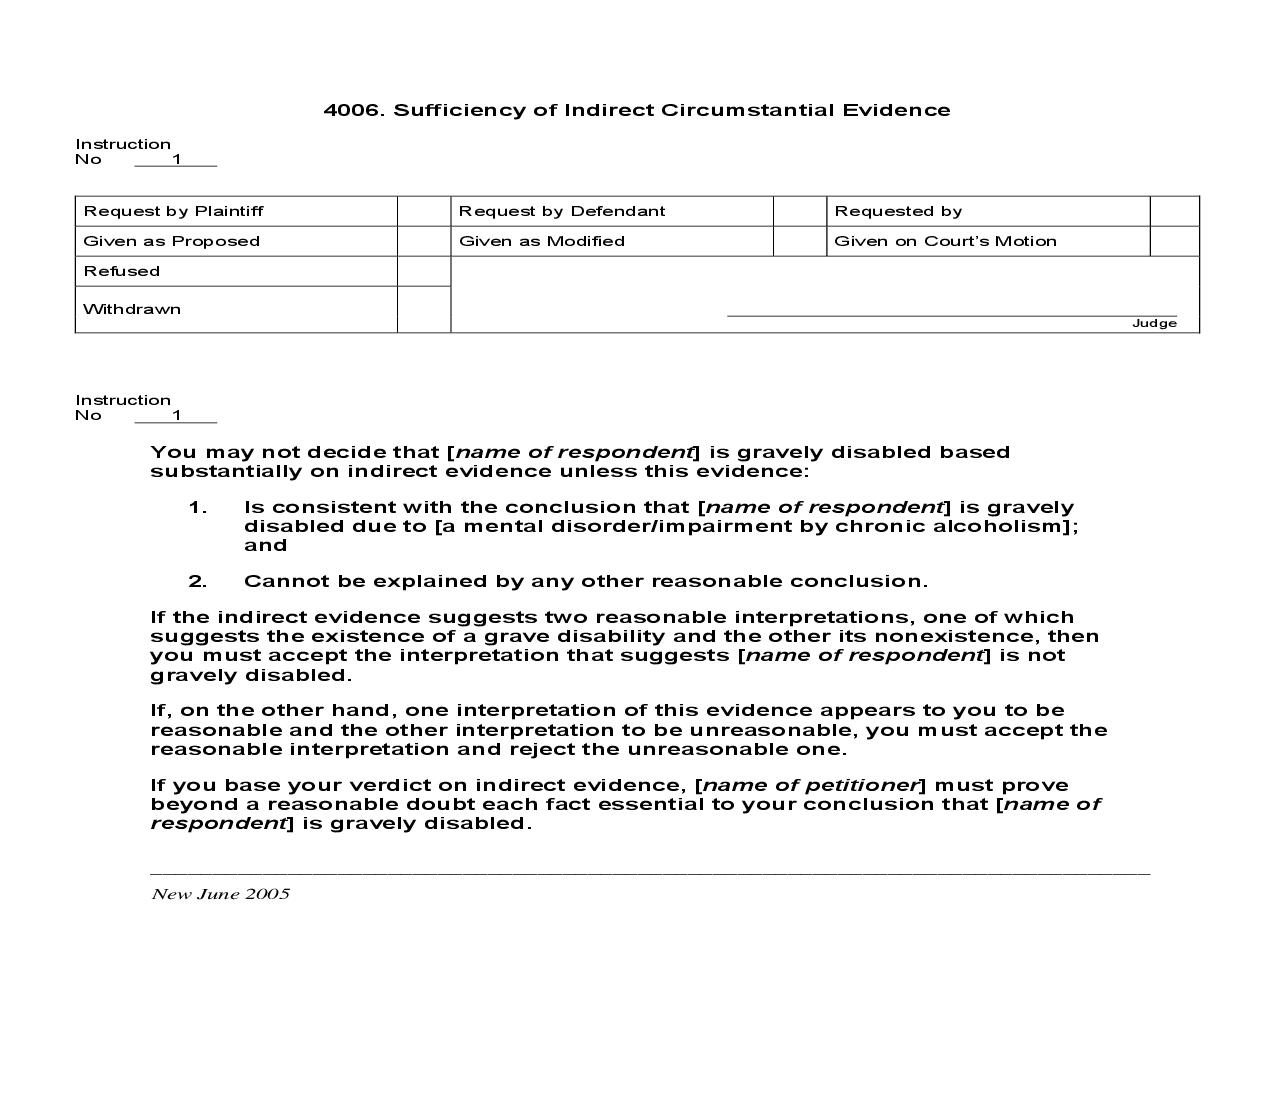 4006. Sufficiency of Indirect Circumstantial Evidence | Pdf Doc Docx | Jury Instructions